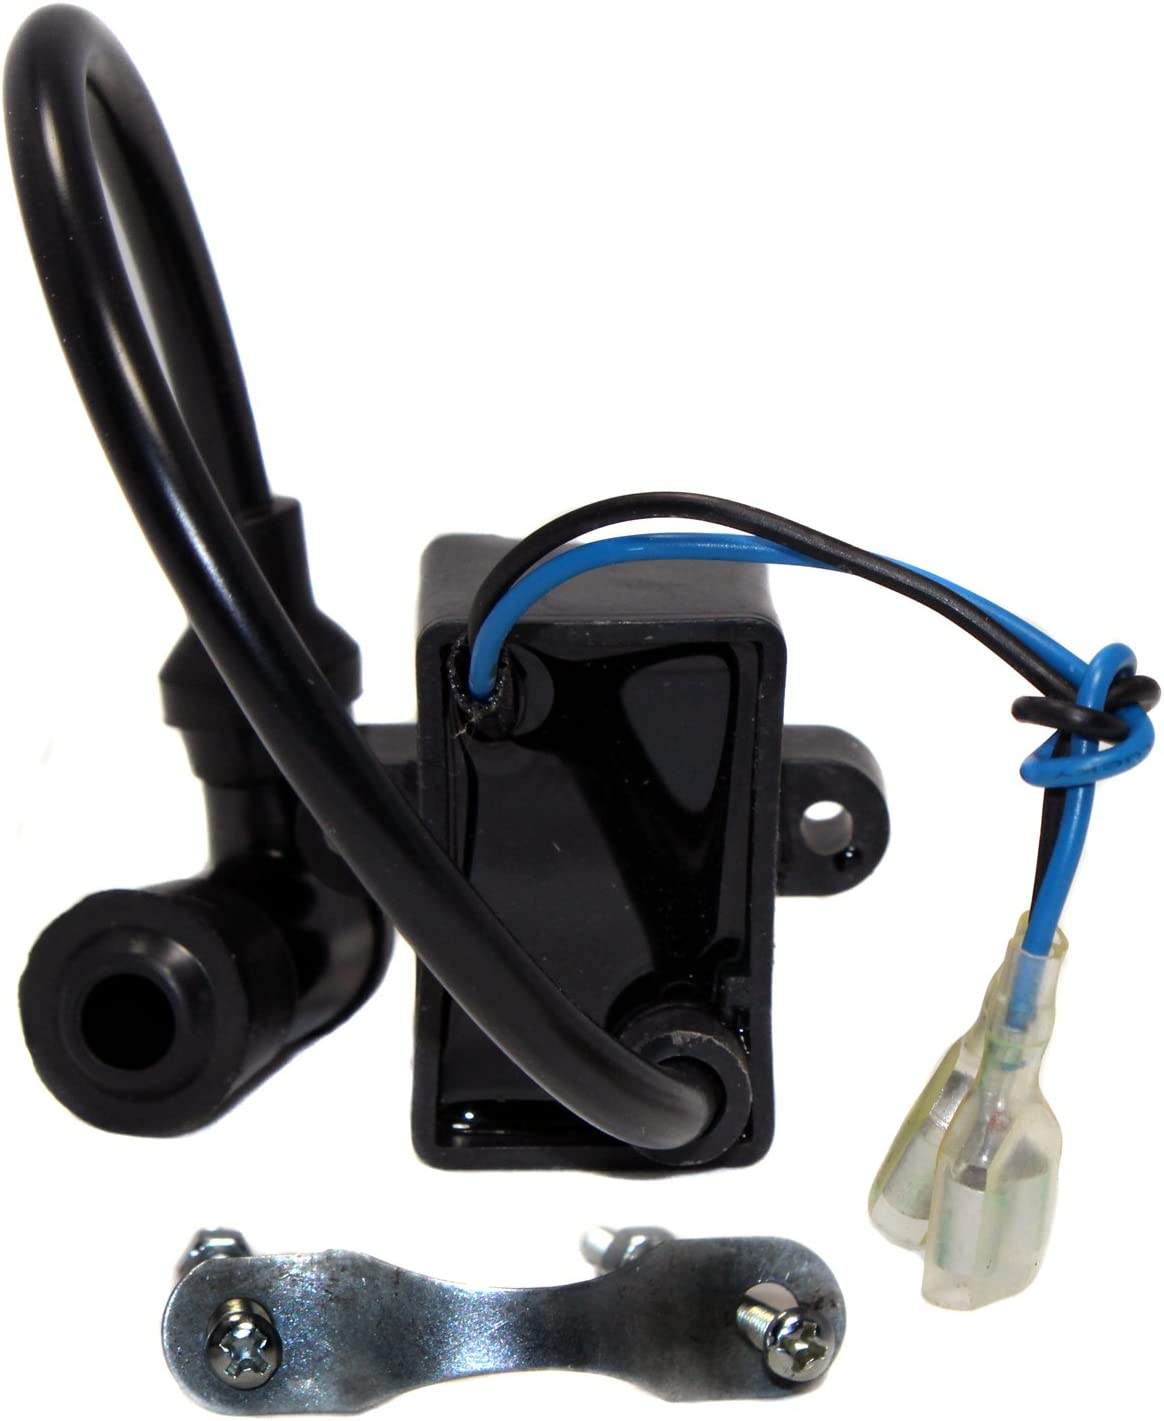 PROCOMPANY Ignition Coil CDI Box Replaces FOR most 49cc-80cc 2-Stroke Engines